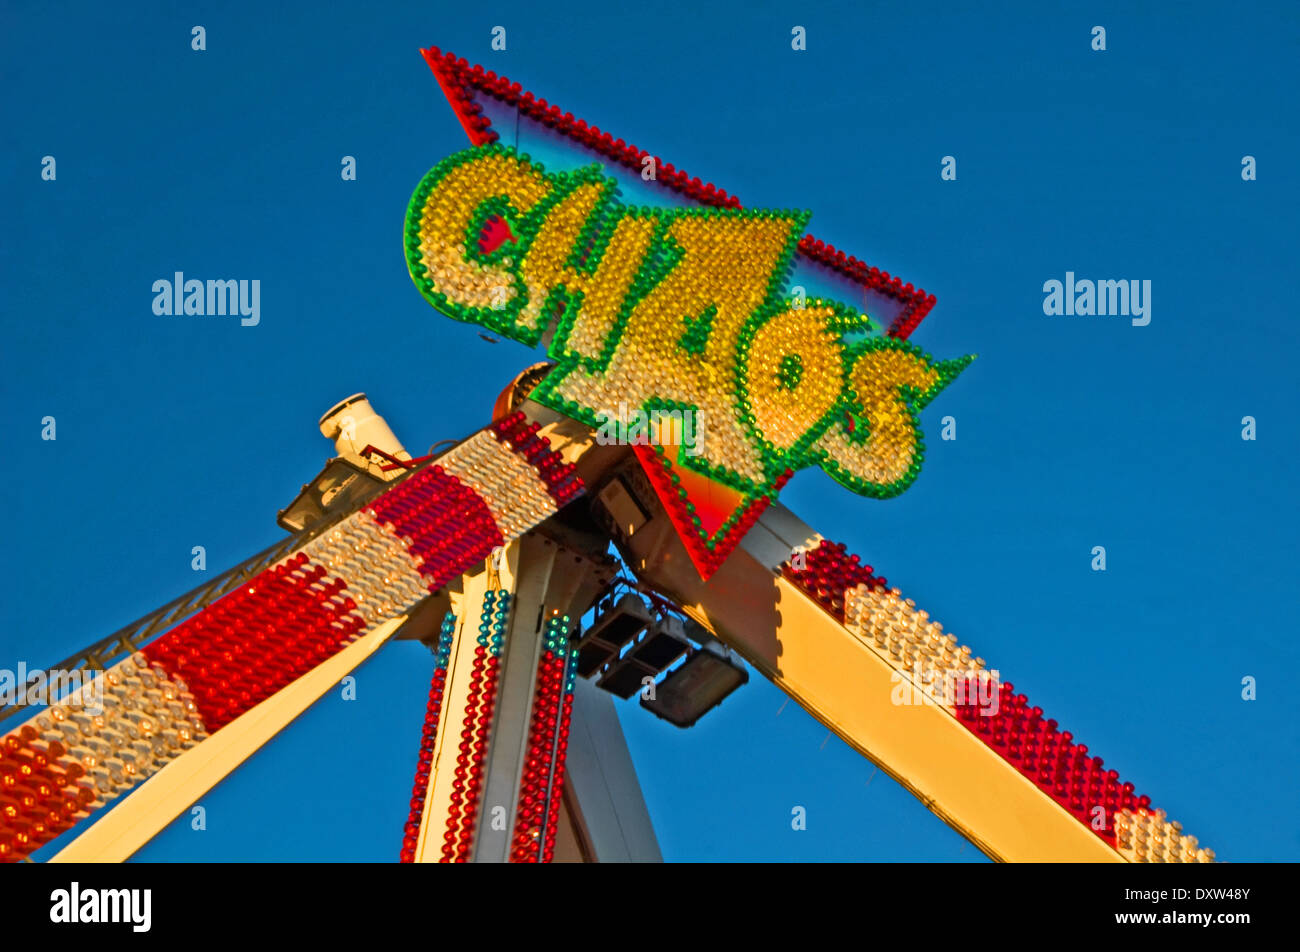 Abstract fairground ride Chaos against a blue sky at Stratford's Autumn Mop Fair - Stock Image